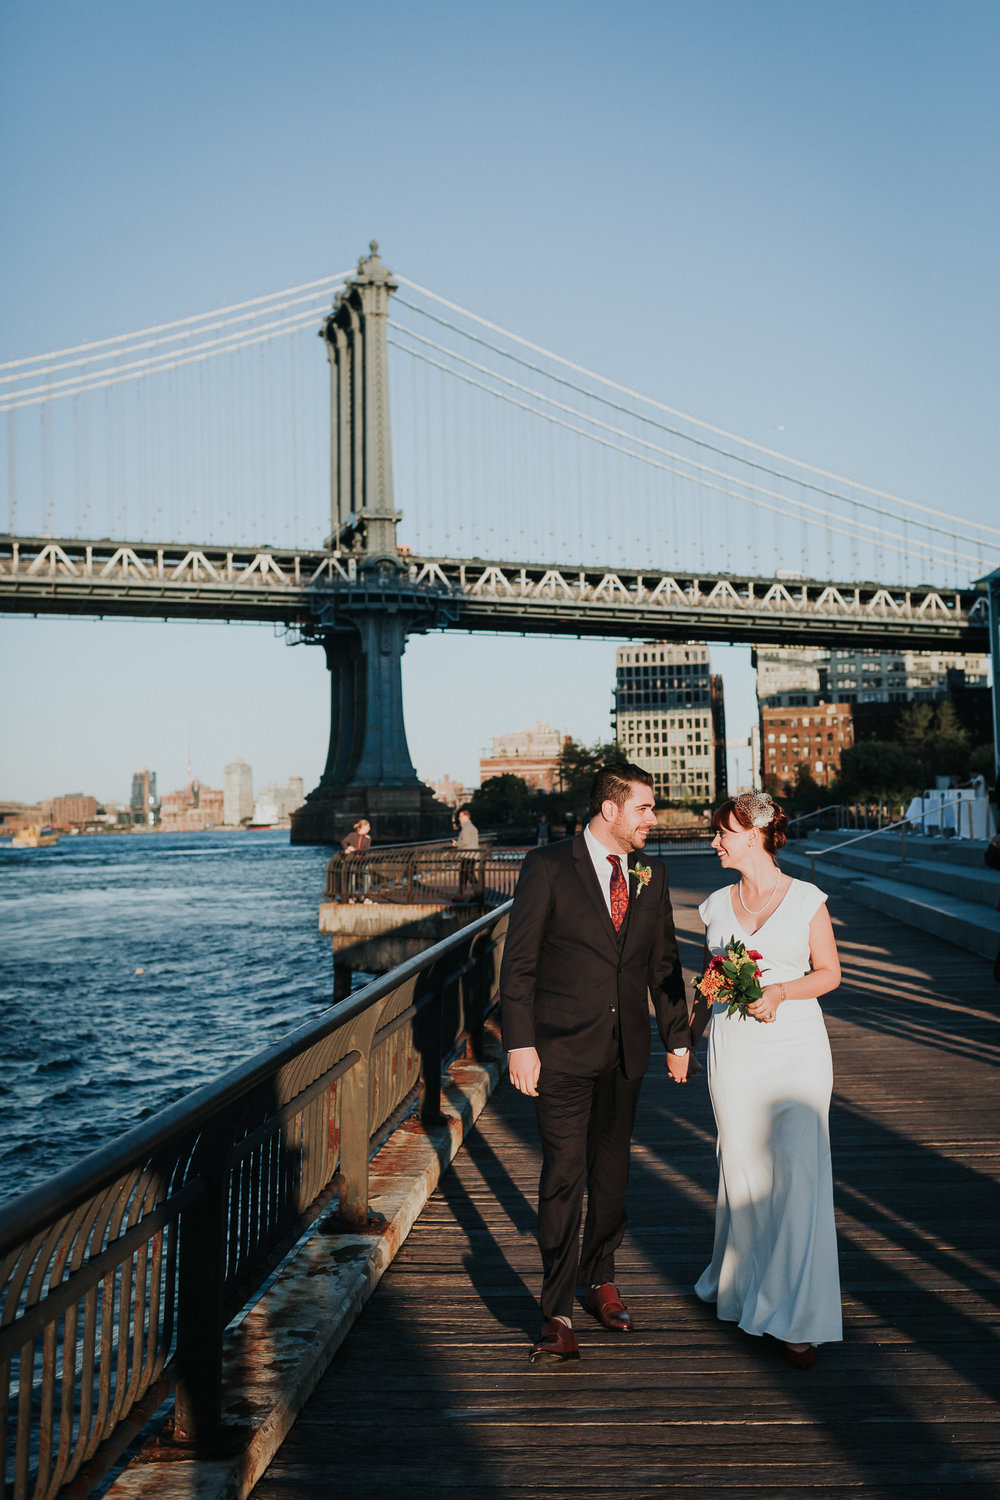 Dumbo-Brooklyn-Bridge-Park-NYC-Elopement-Documentary-Photographer-31.jpg